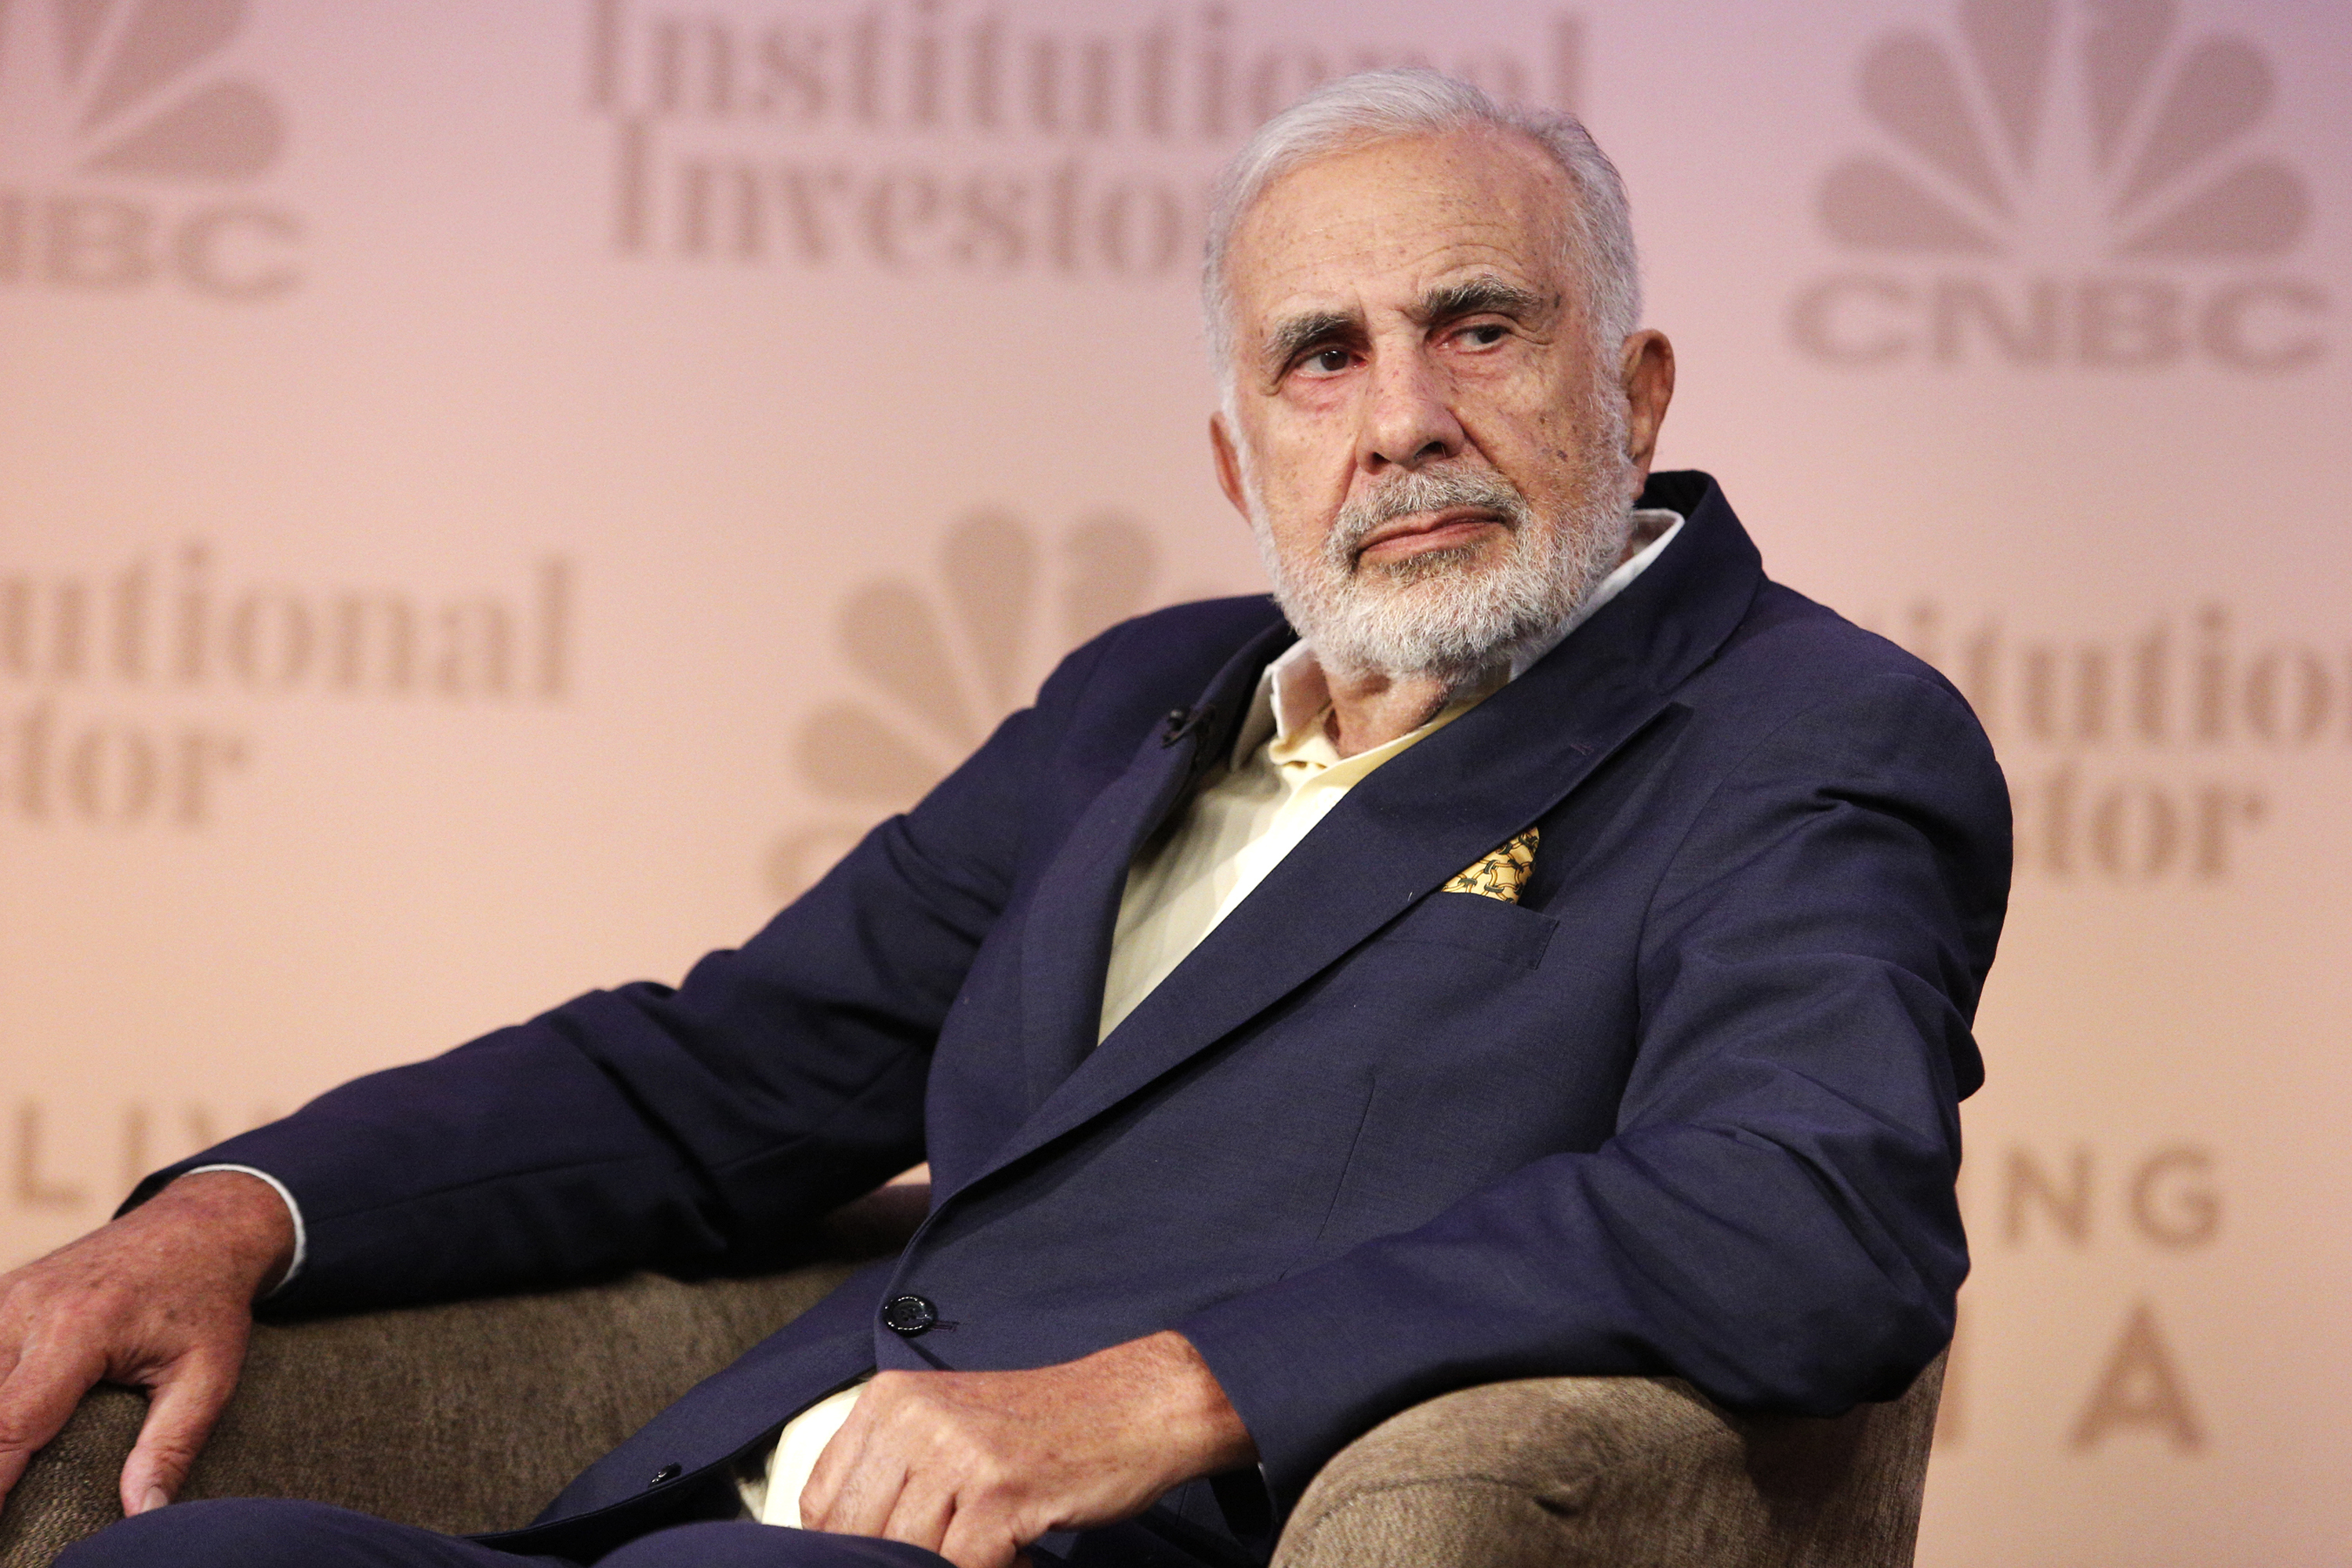 CNBC's Scott Wapner interviews Carl Icahn, Chairman, Icahn Enterprises at the CNBC Institutional Investor Delivering Alpha Conference in New York.